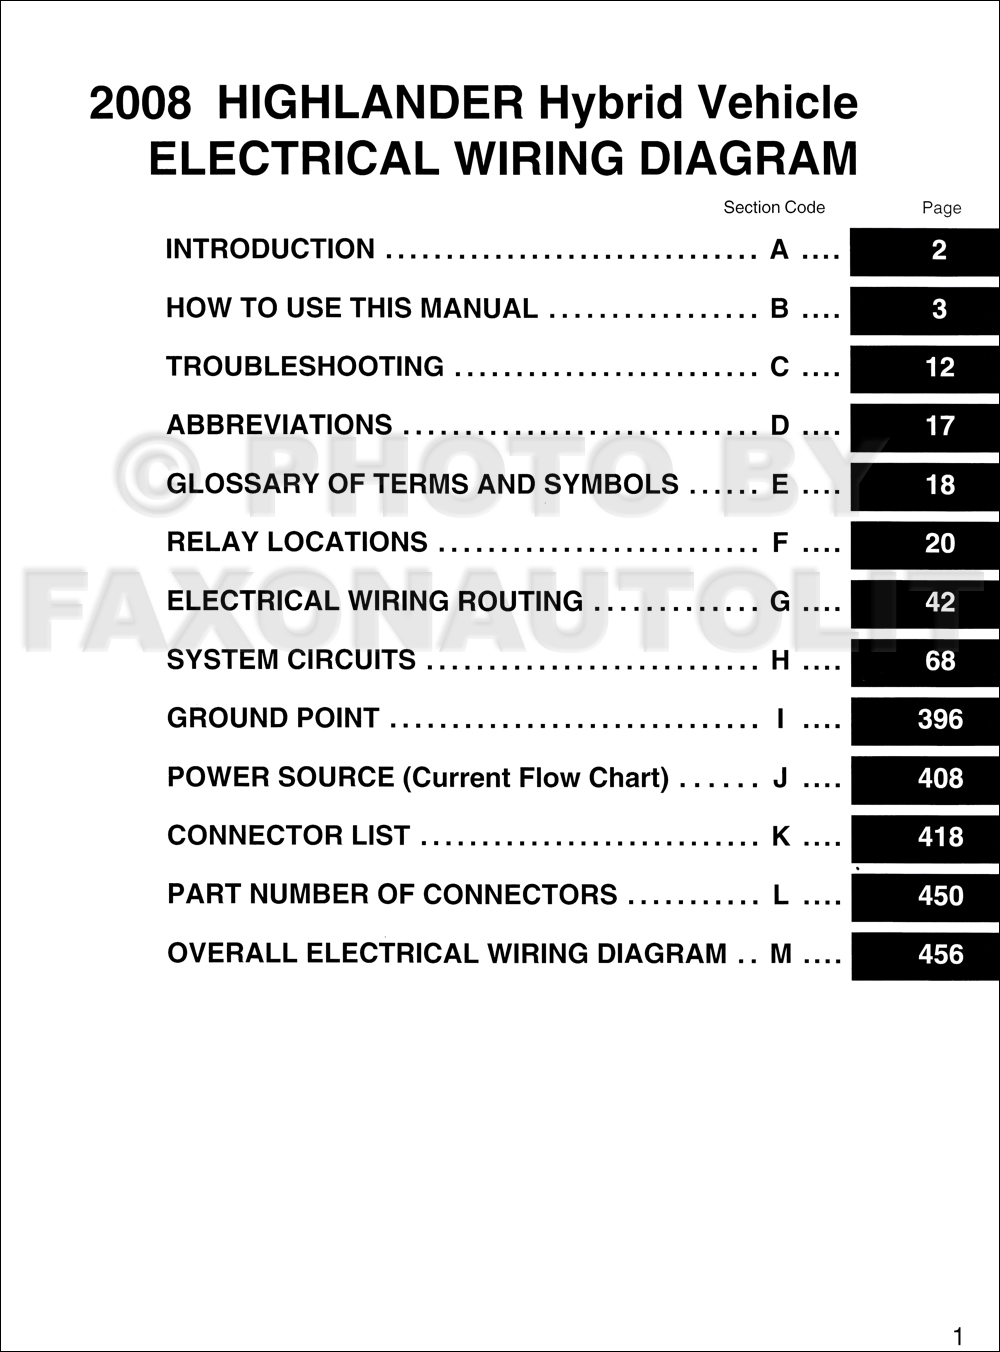 2006 toyota tundra jbl radio wiring diagram wiring diagram and 2001 toyota tundra wiring diagram auto schematic